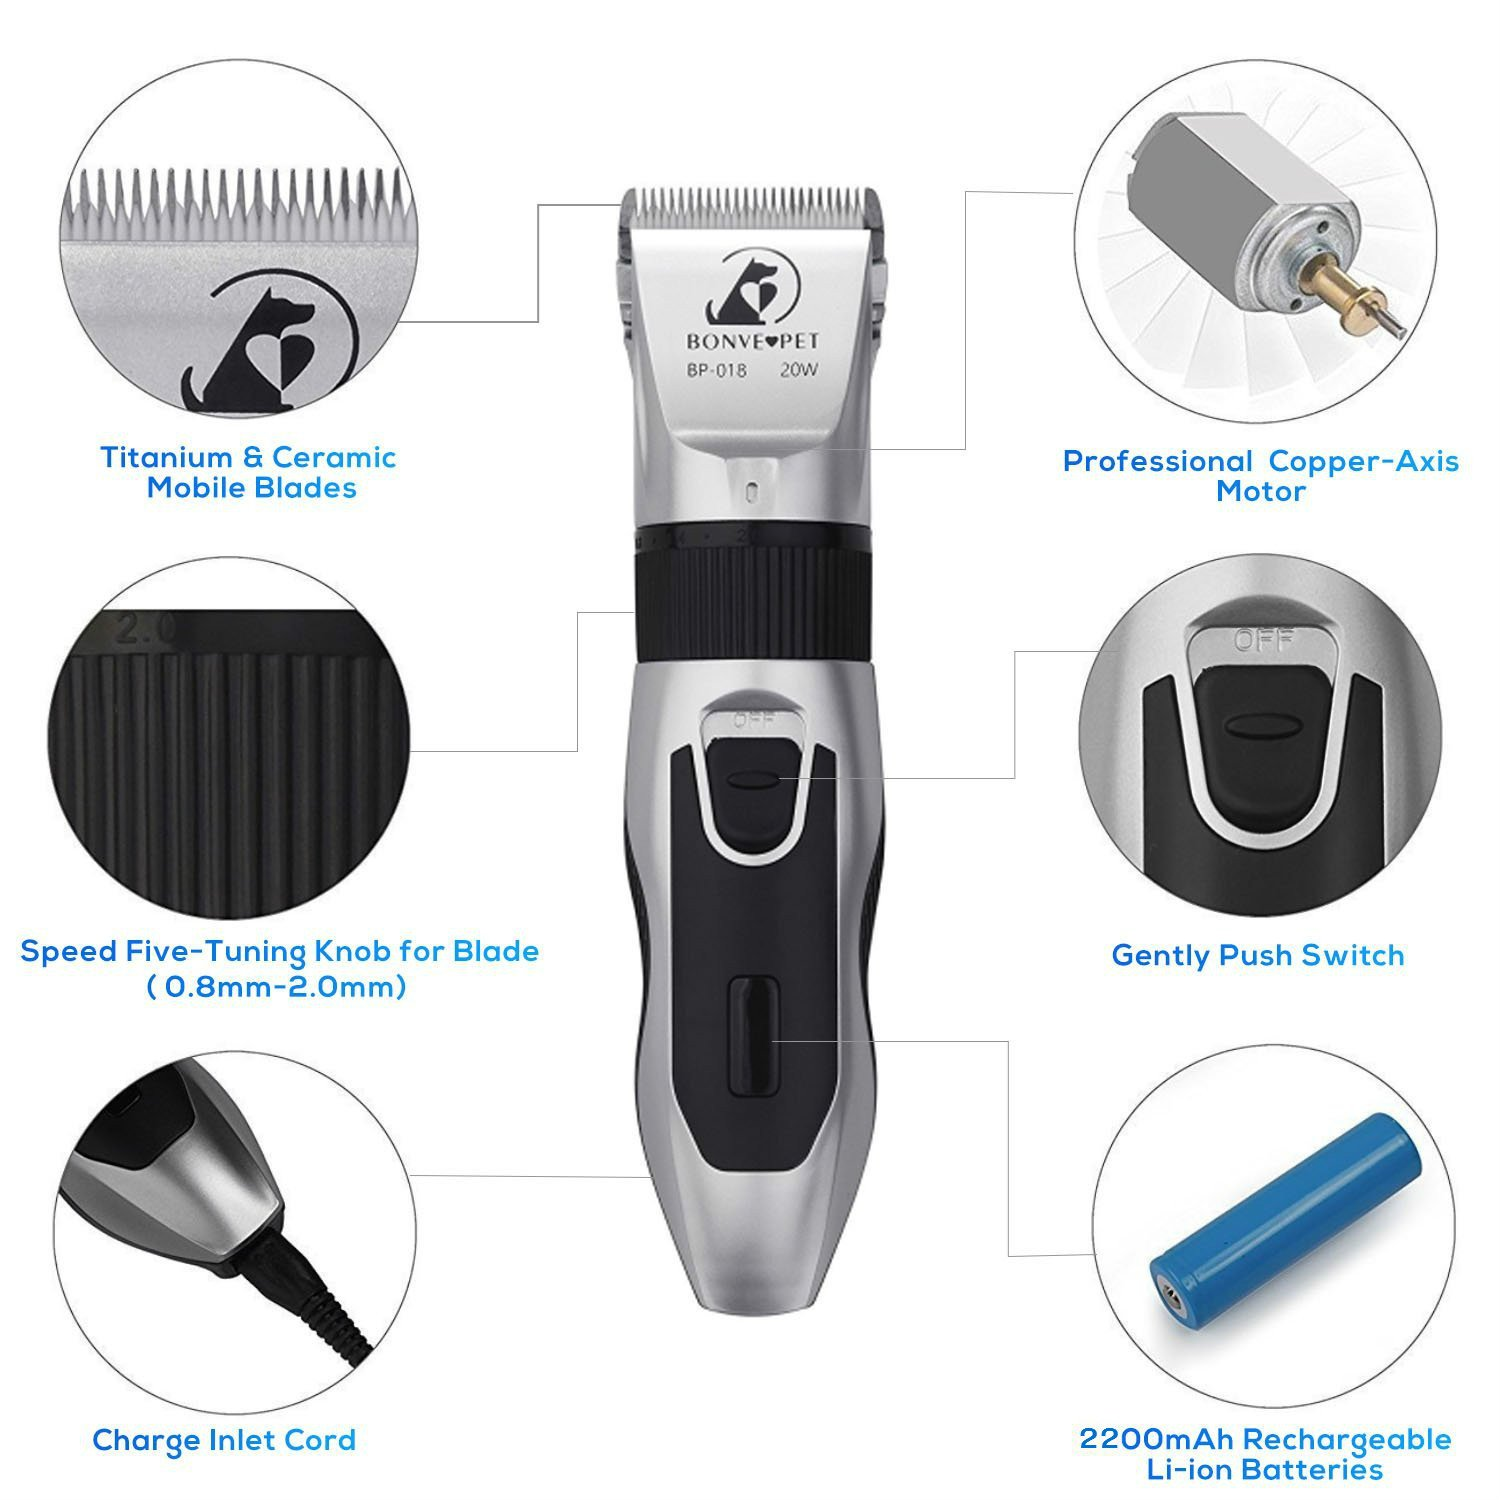 Dog Grooming Clippers - Cordless Quiet Pet Hair Clippers Trimmer Rechargeable with Stainless Steel Blades Dog Comb Shears Best Professional Hair Clipper Set for Dogs Cats Pets Long Short Hair by Bonve Pet (Image #1)